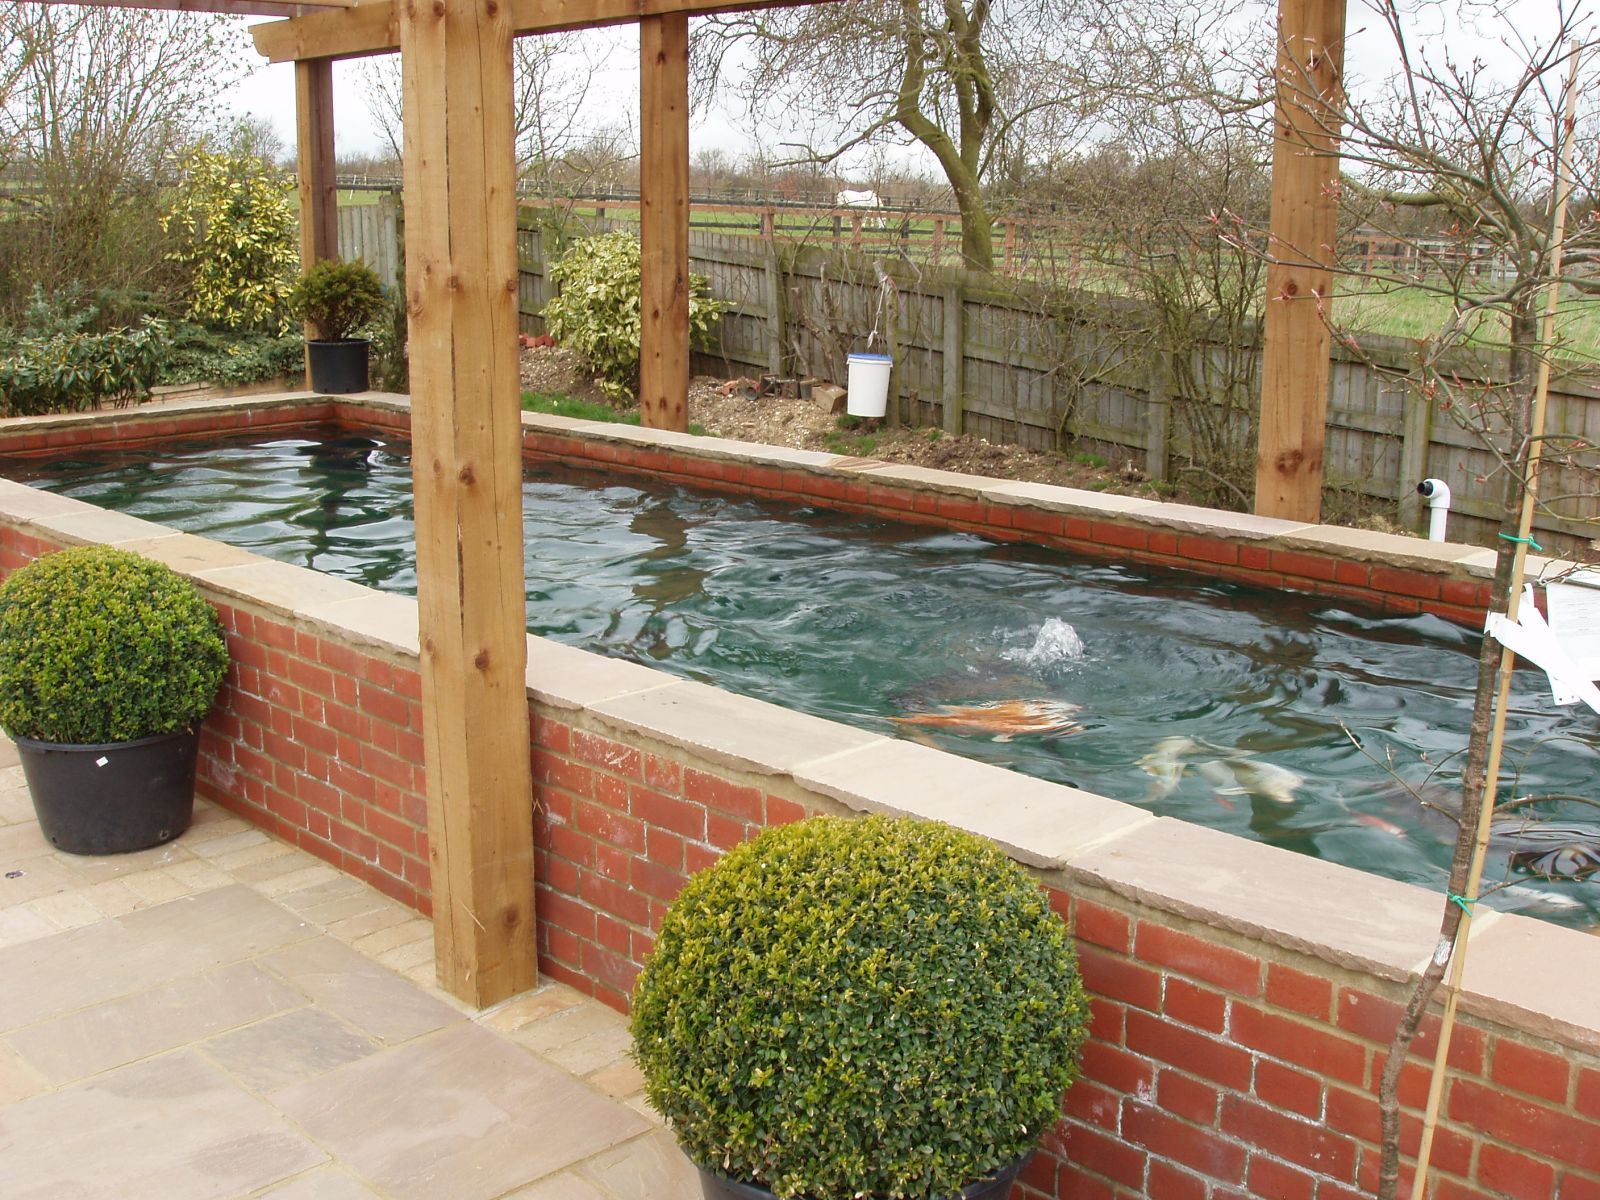 Pond design ideas raised koi ponds pond stars uk dorset for Garden ponds uk